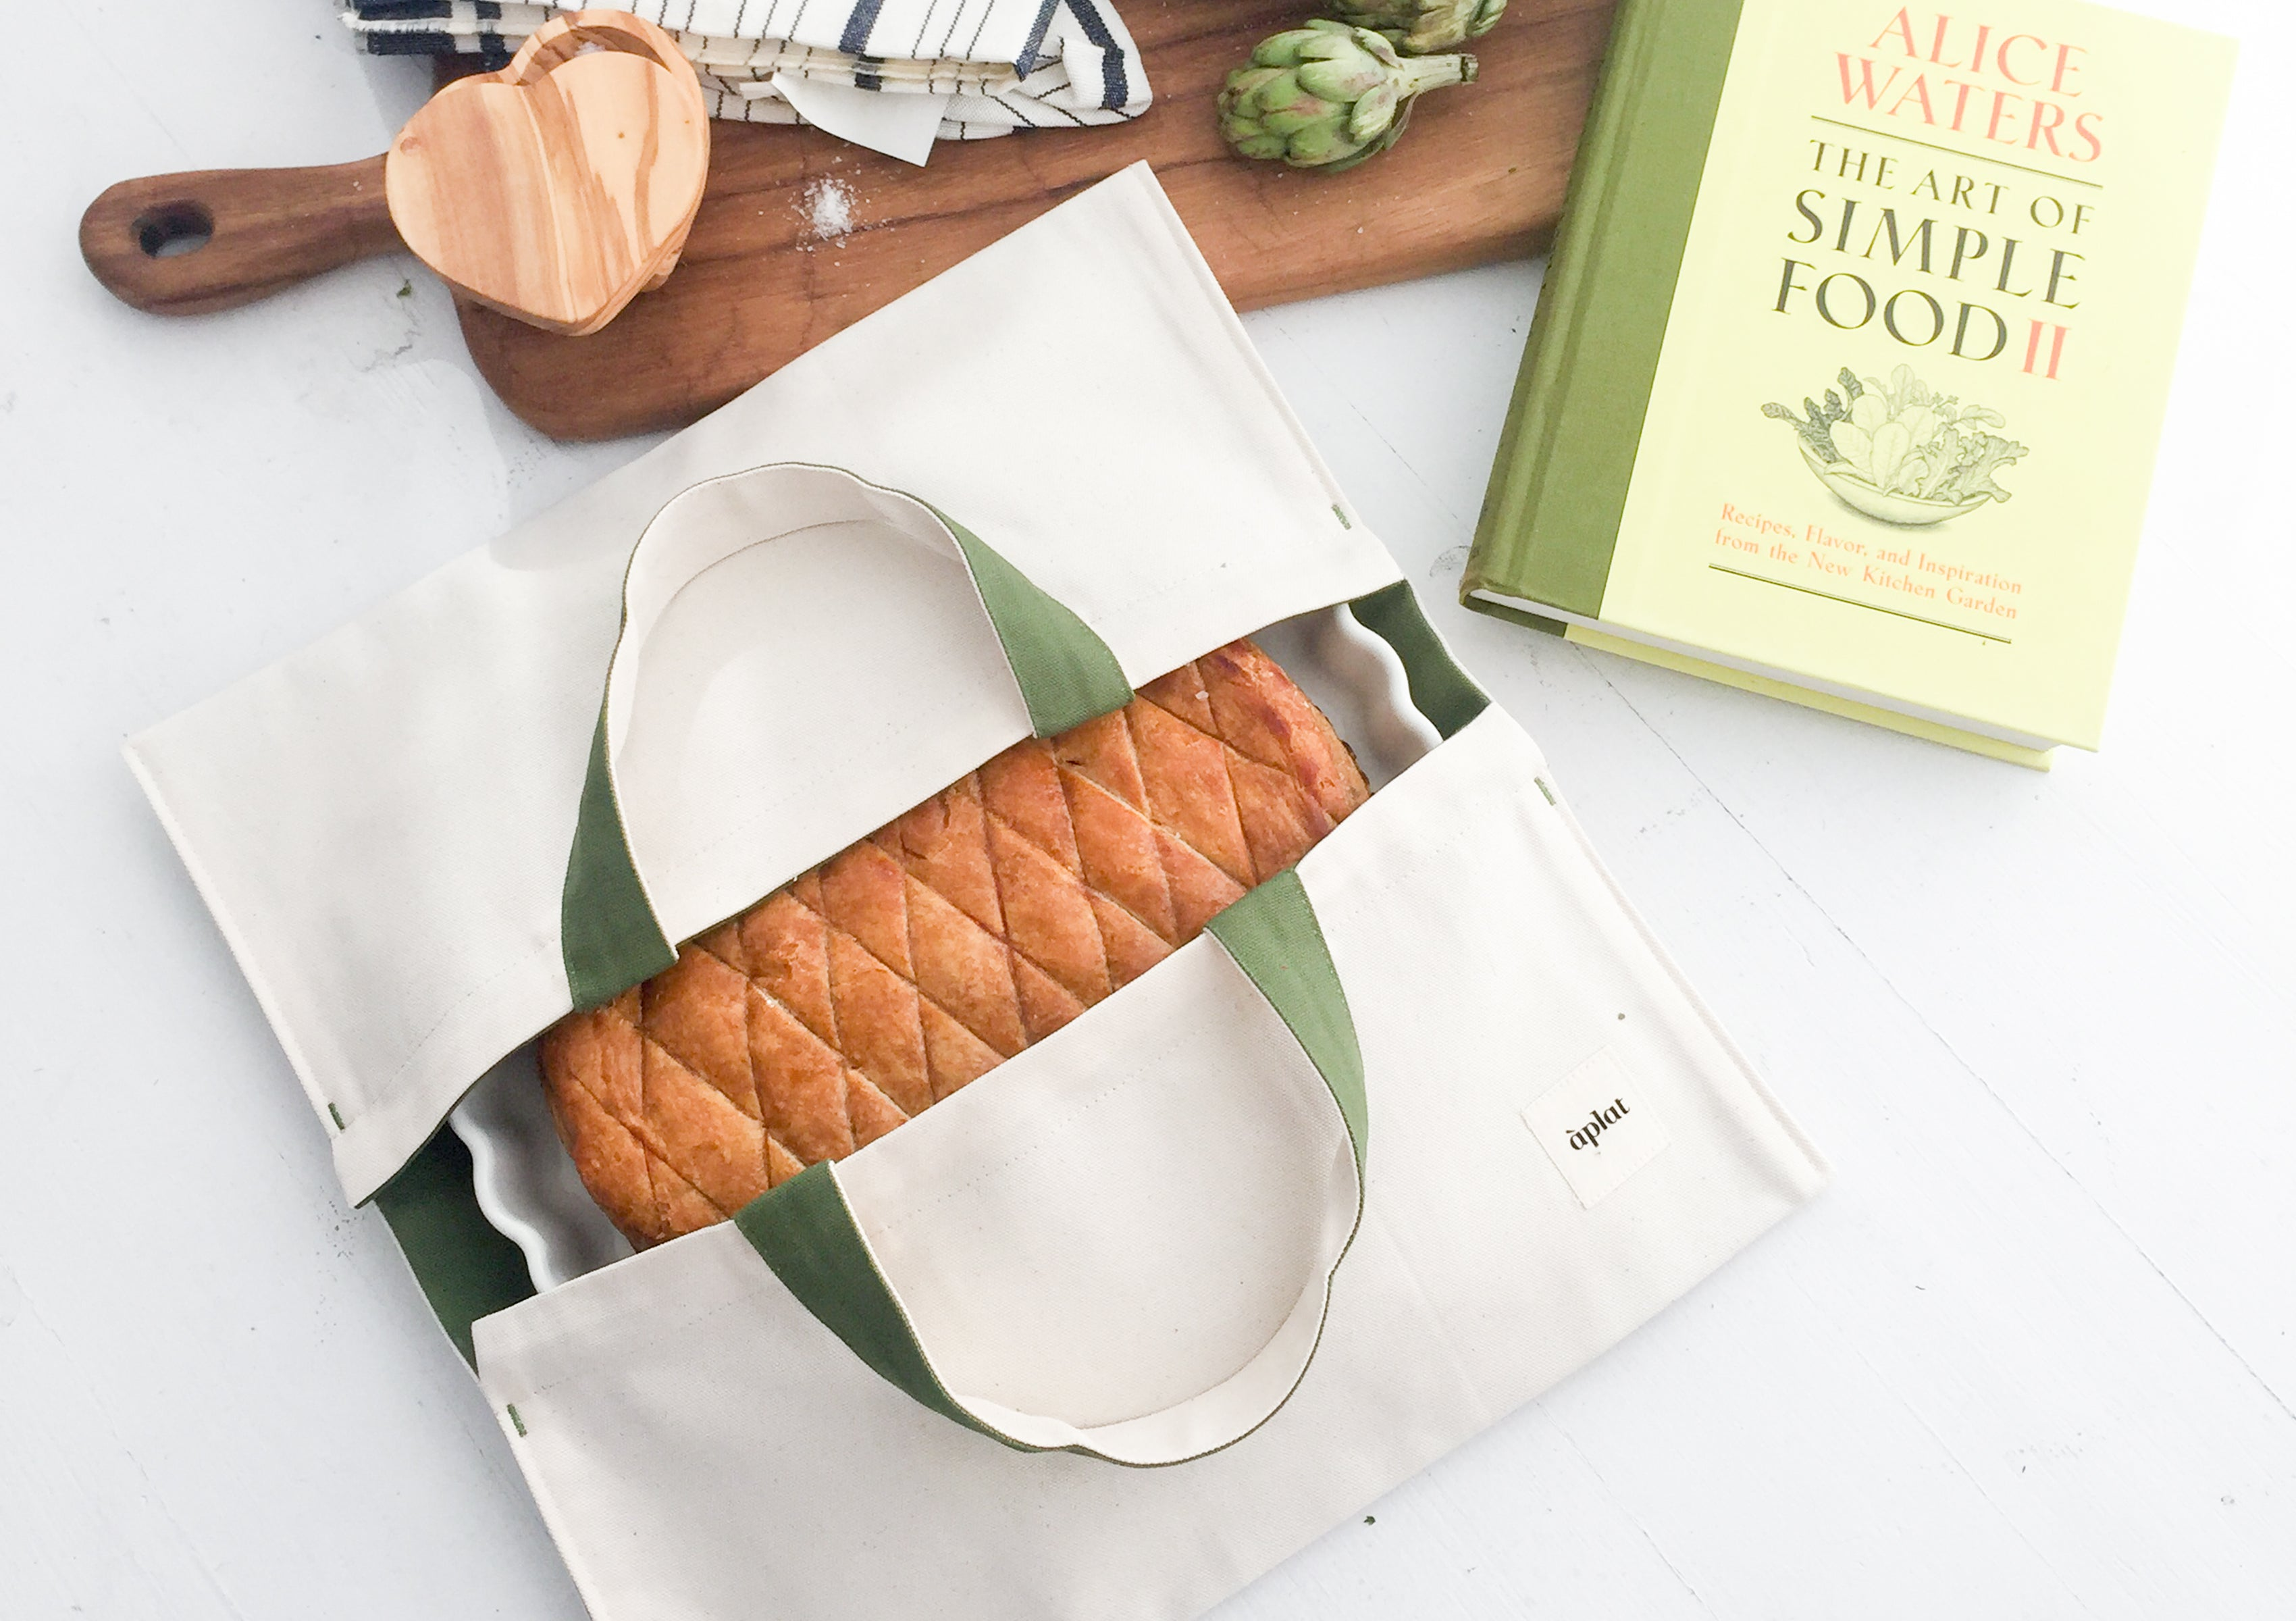 The Aplat Plat Wide Tote is designed to carry deliciously prepared food. Simply slide a plate or bowl through the center opening to keep items horizontal and upright. Perfect for potlucks, picnics and everyday shopping.